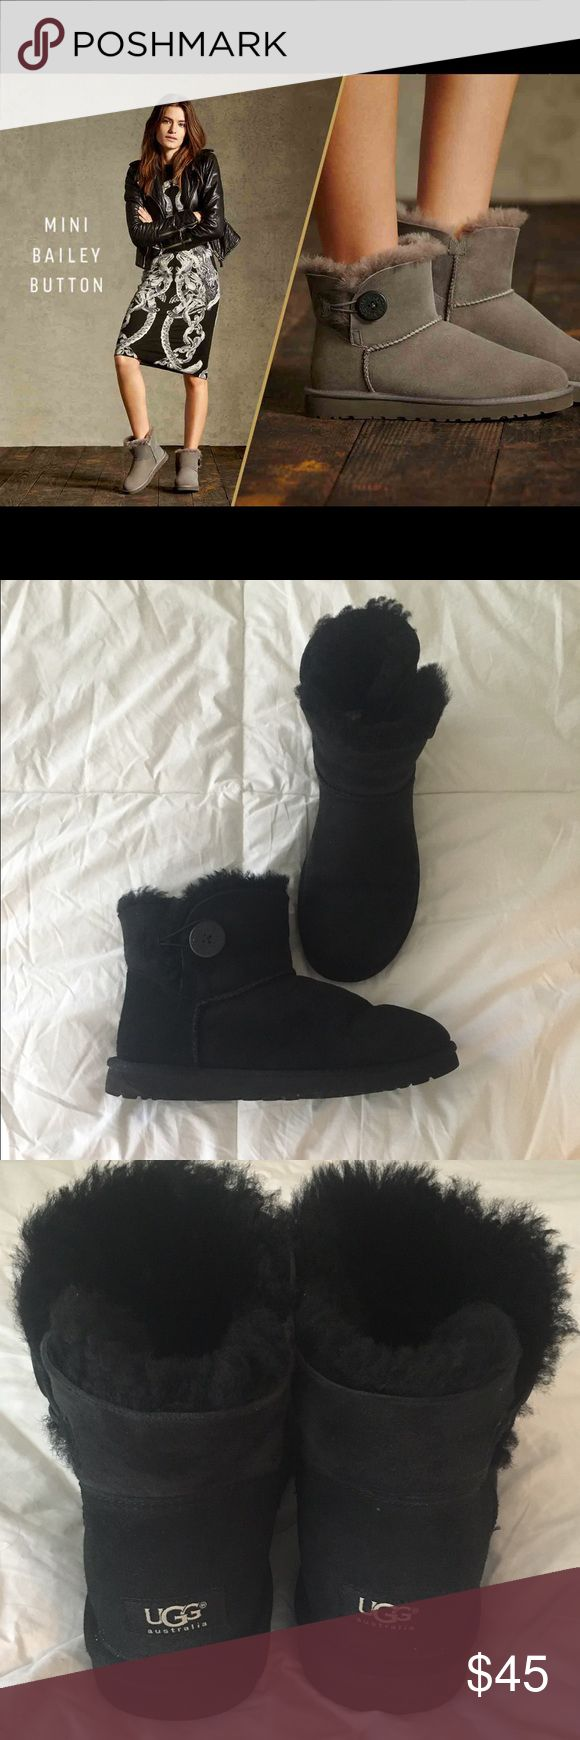 Mini Bailey Button UGGS Authentic Uggs. Bought from the Ugg store a year ago. So comfortable! Good condition. They say size down....so this is a size 9, though I normally wear a size 9 1/2. UGG Shoes Ankle Boots & Booties